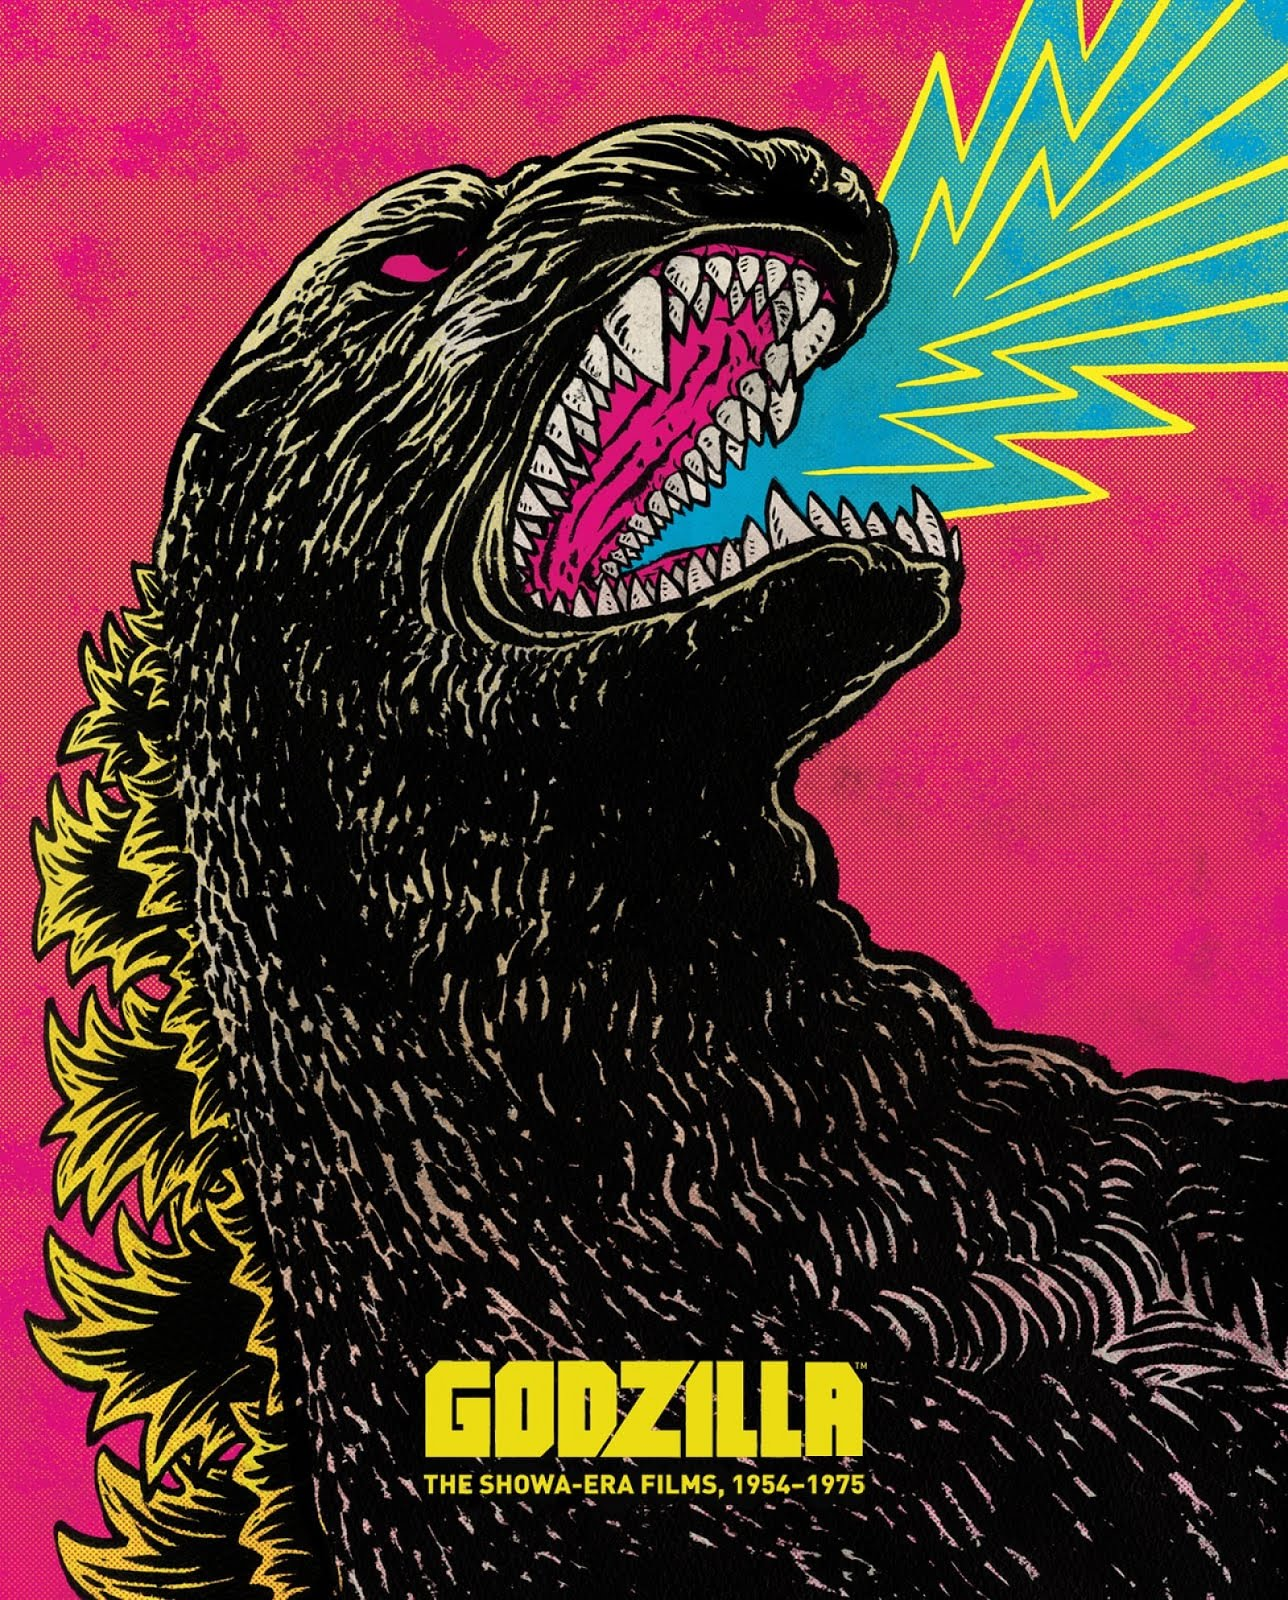 The CRITERION GODZILLA!